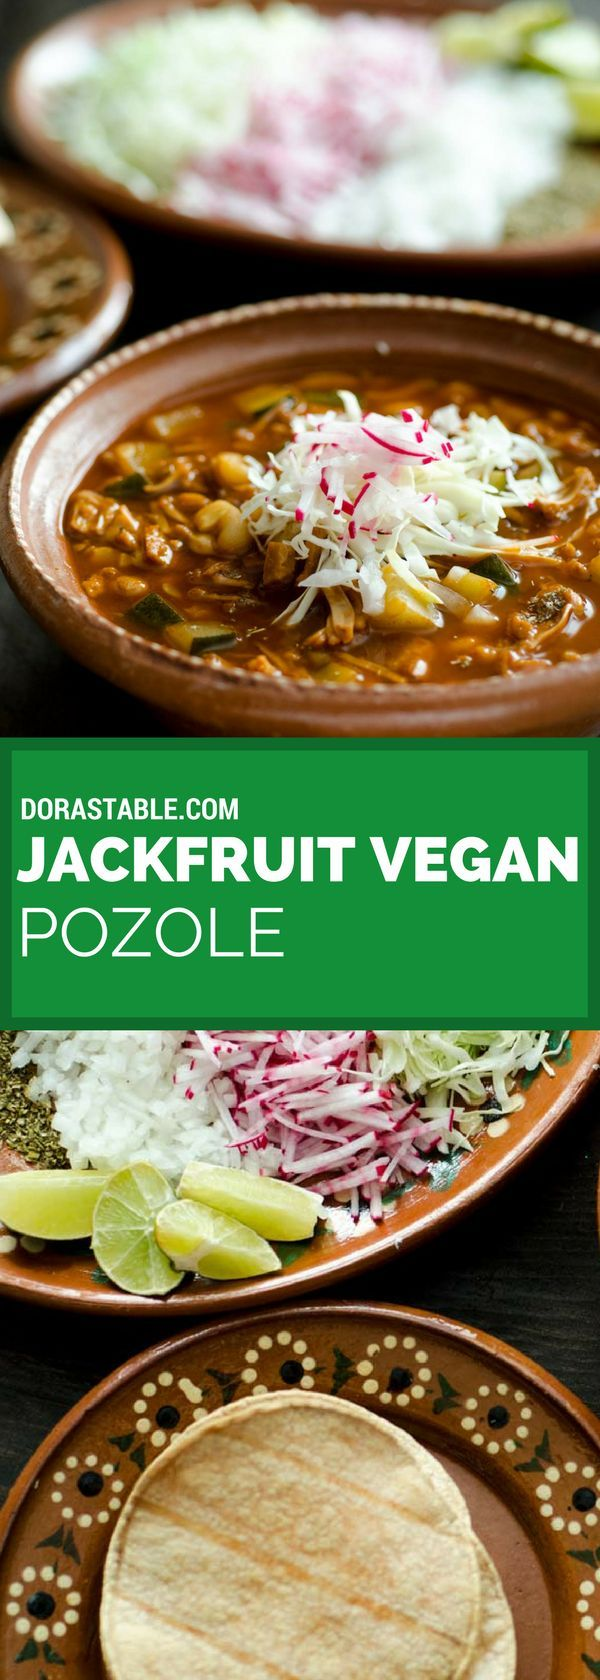 This jackfruit vegan pozole is a hearty, spicy, and satisfying soup. It is an adaptation of my grandmother's recipe, perfect for the holidays